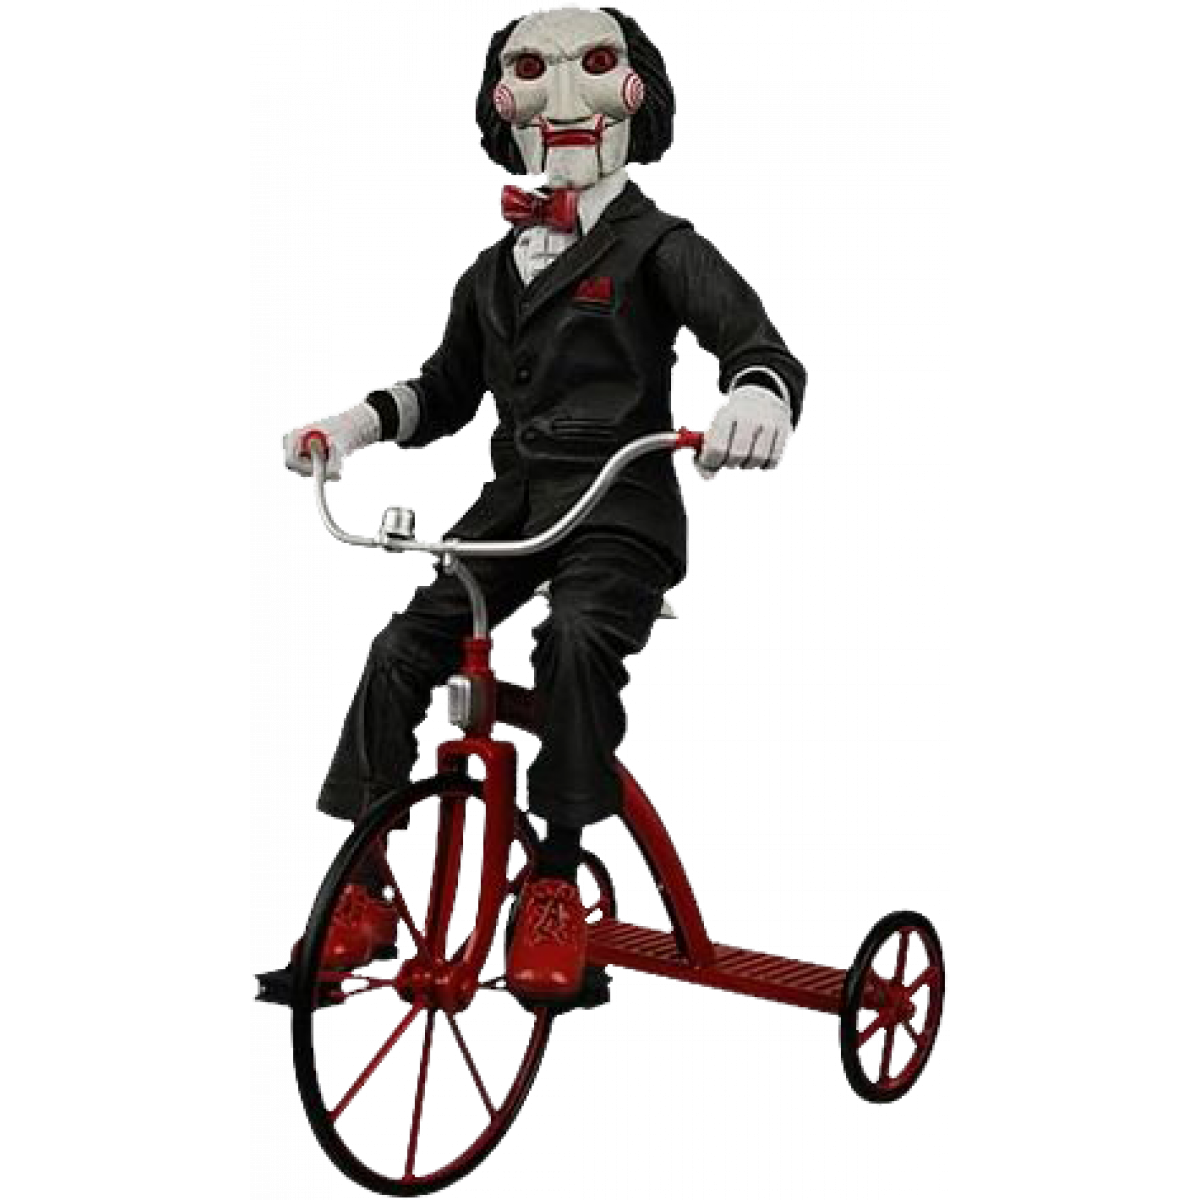 SAW BILLY THE PUPPET ON TRICYCLE 12 FIGURE Man Zone